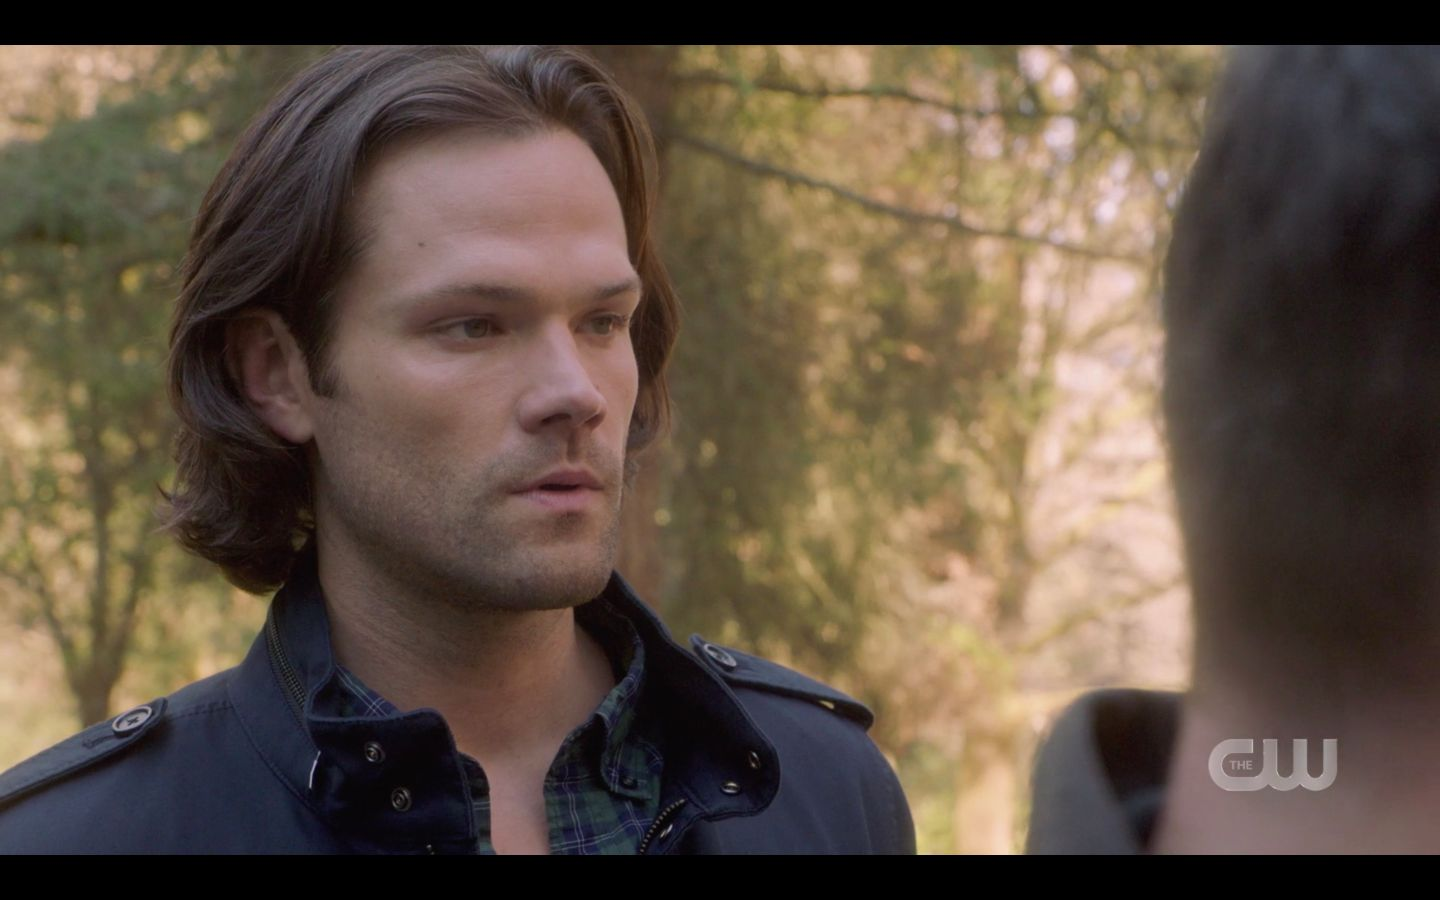 Sam Winchester watching Dean consider killing Jack for Mary SPN 14.20